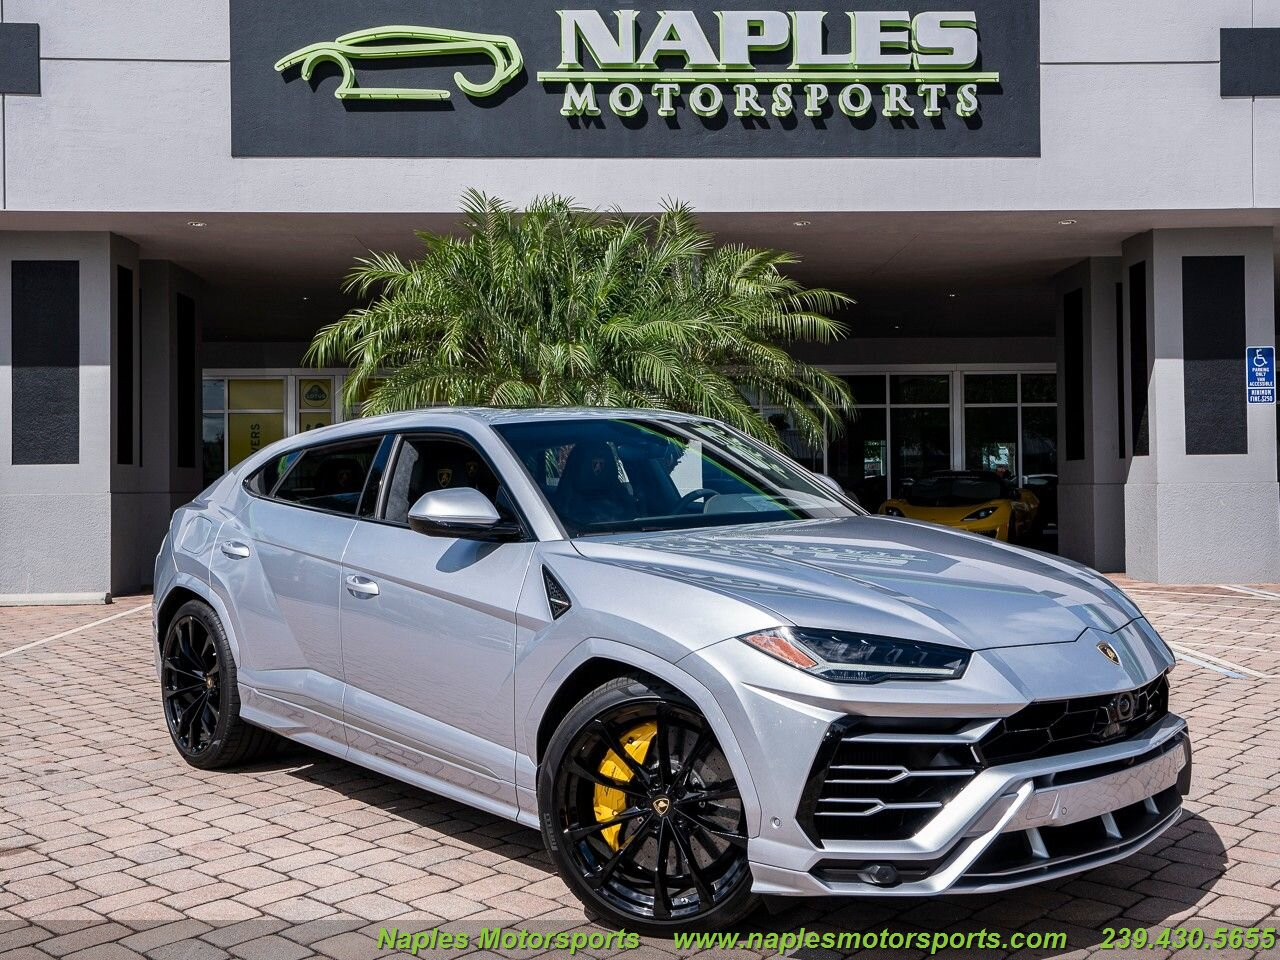 2020 lamborghini urus for sale in naples fl stock 2a a07231 2020 lamborghini urus for sale in